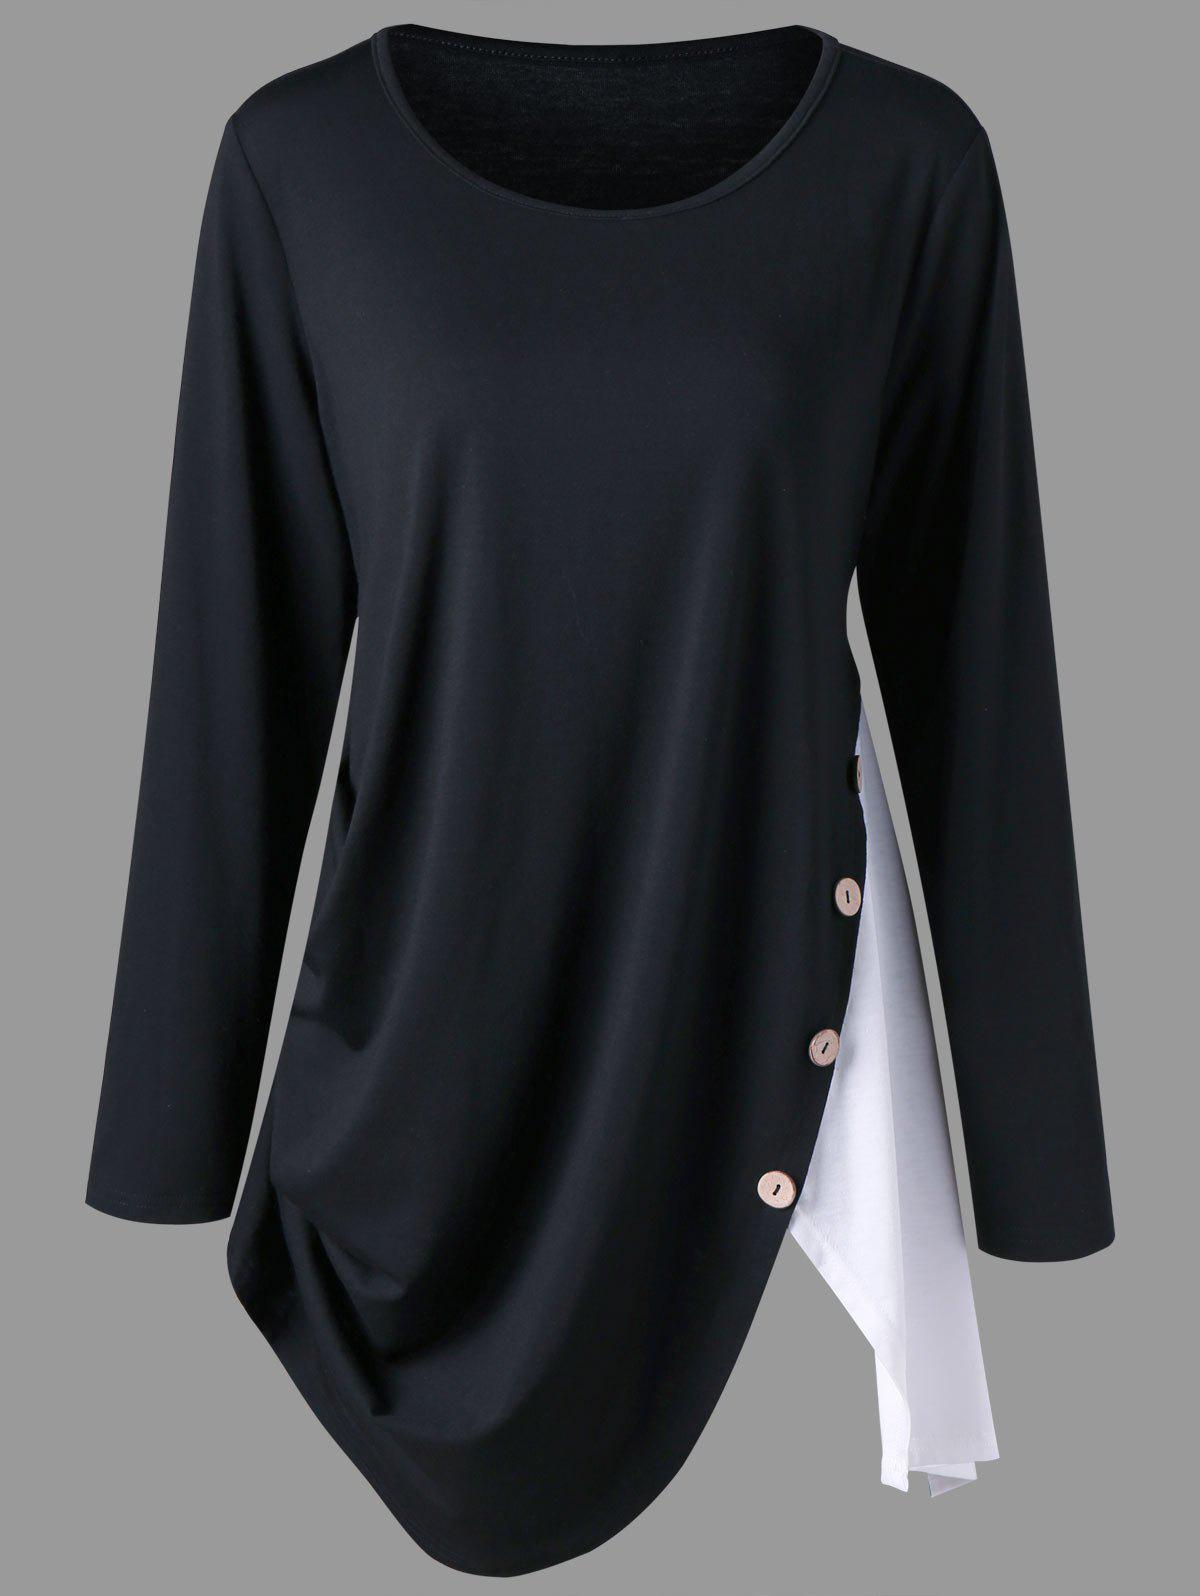 Plus Size Two Tone Asymmetrical T-shirtWOMEN<br><br>Size: 5XL; Color: WHITE AND BLACK; Material: Polyester,Spandex; Shirt Length: Long; Sleeve Length: Full; Collar: Round Neck; Style: Casual; Season: Fall,Spring; Embellishment: Button; Pattern Type: Solid; Weight: 0.3400kg; Package Contents: 1 x T-shirt;